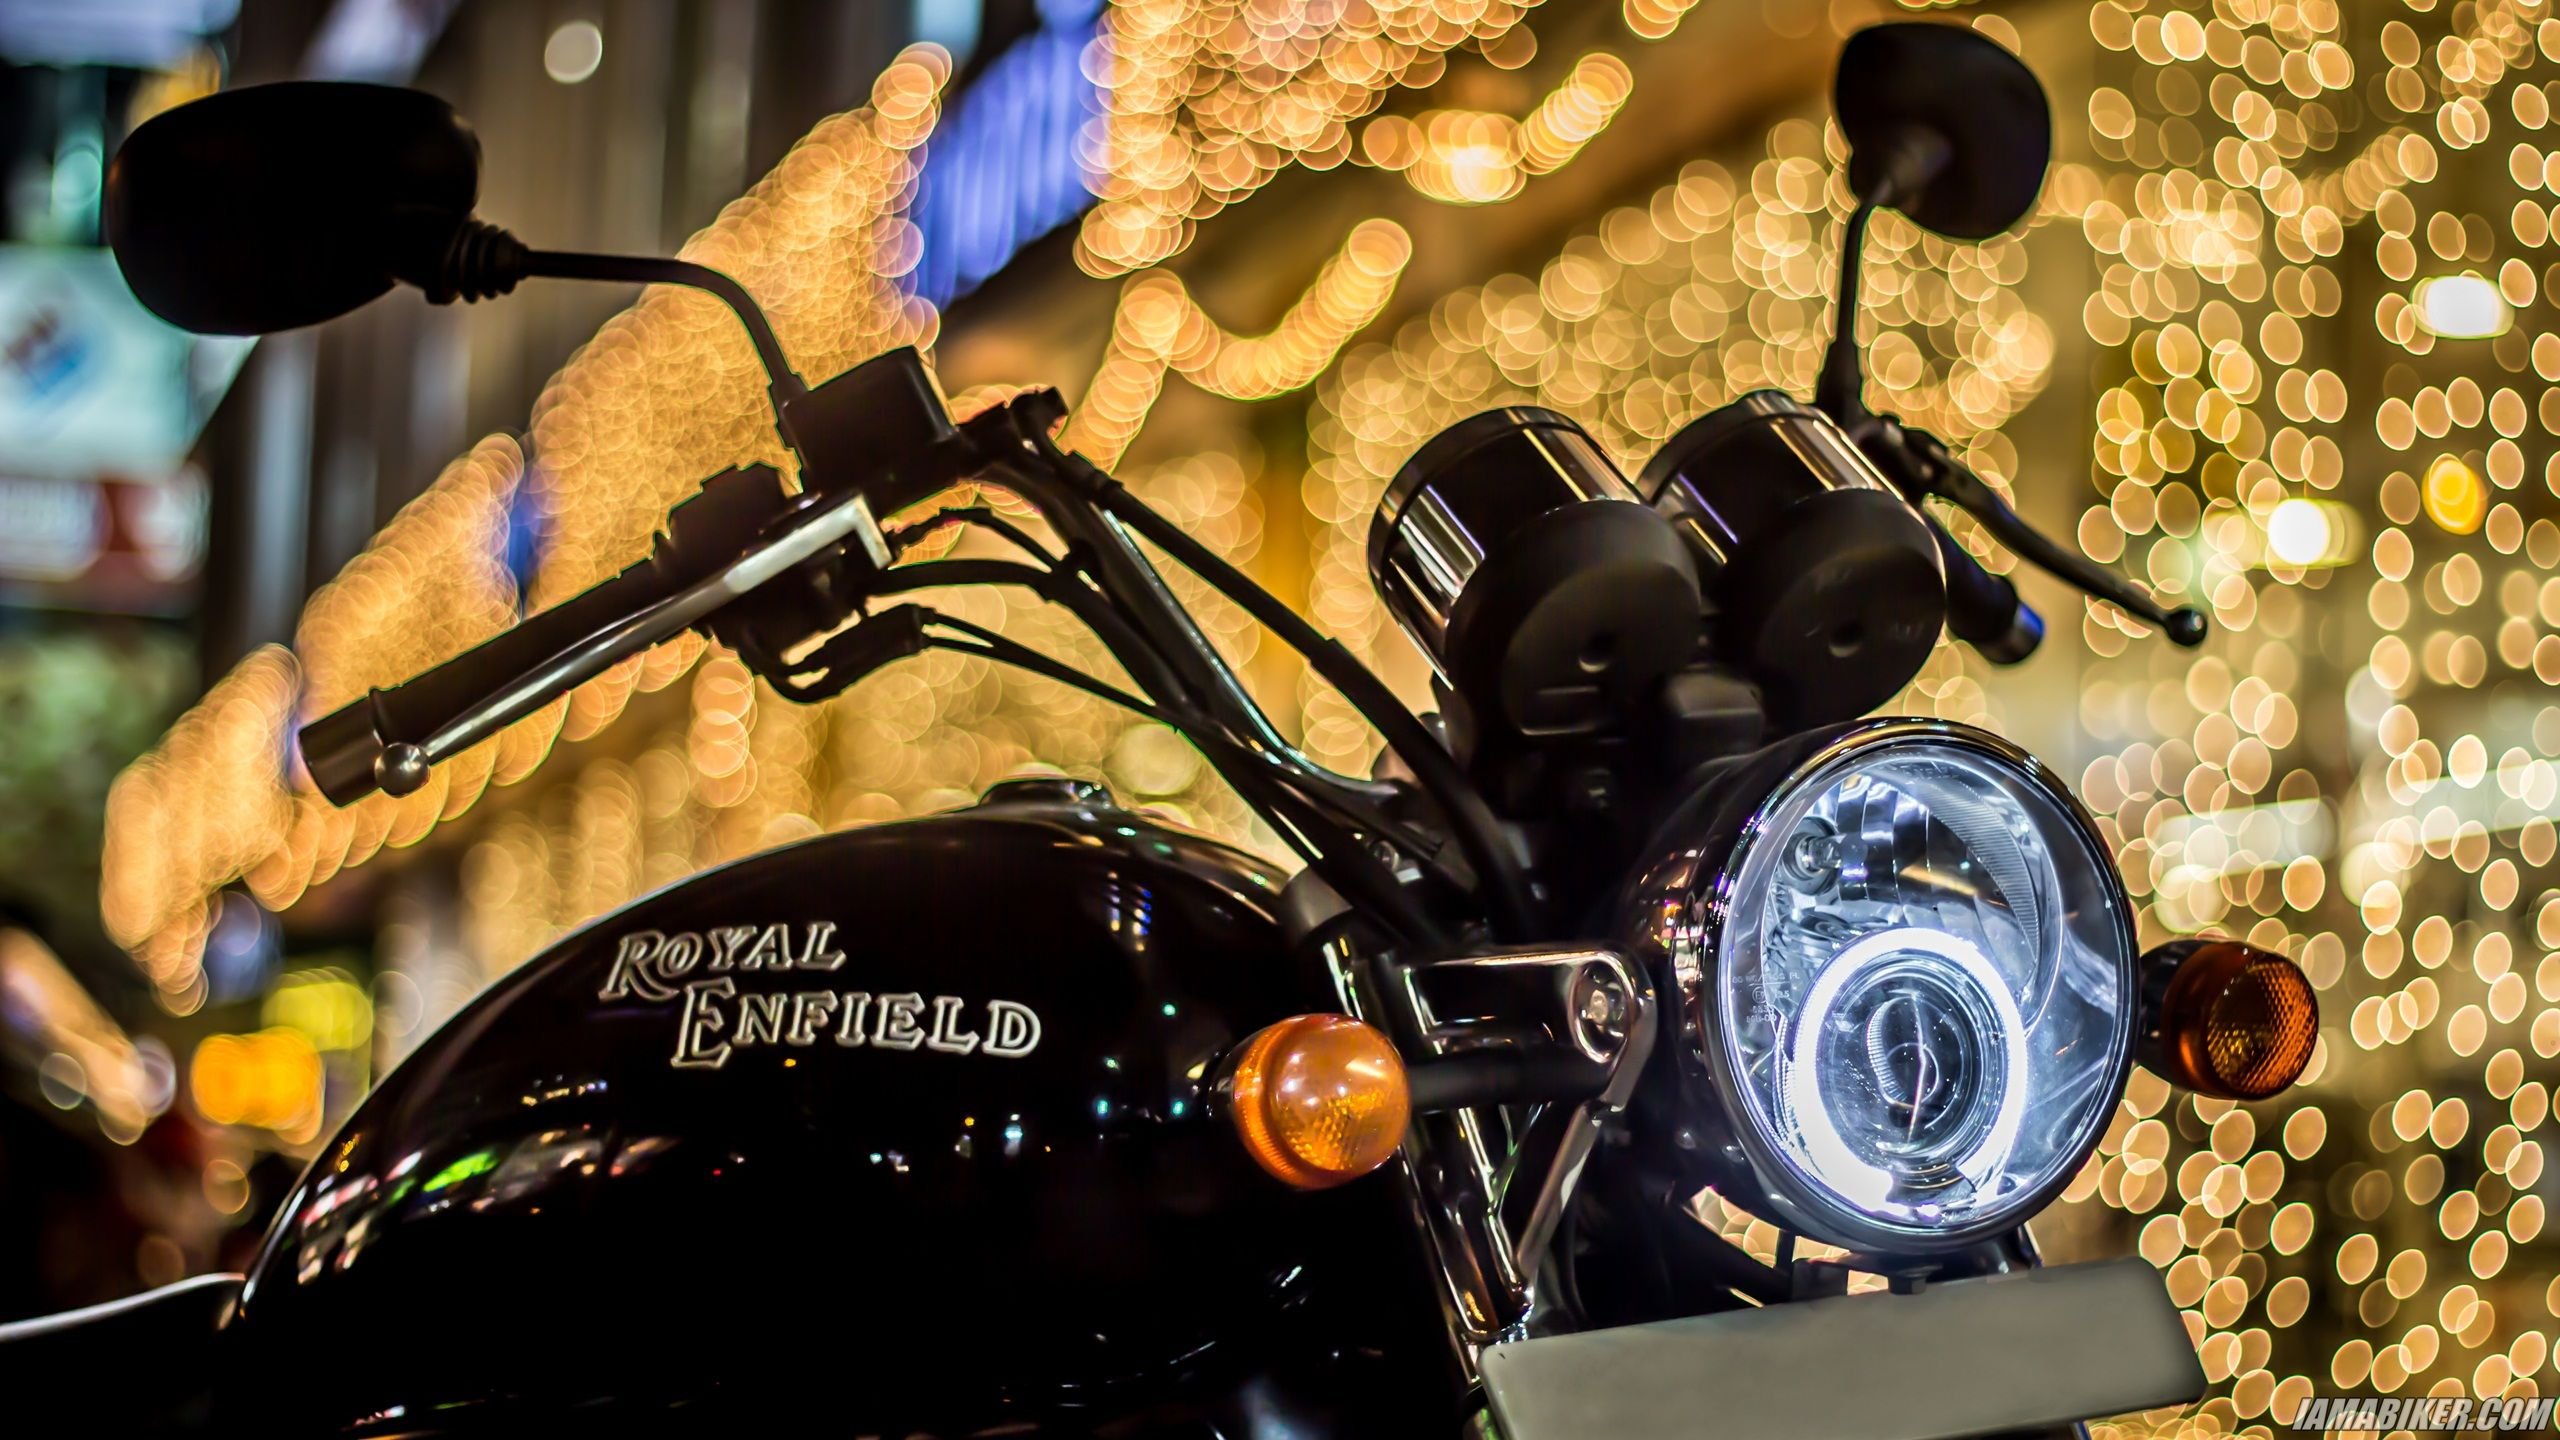 Diwali HD Wallpapers - Royal Enfield Thunderbird 500